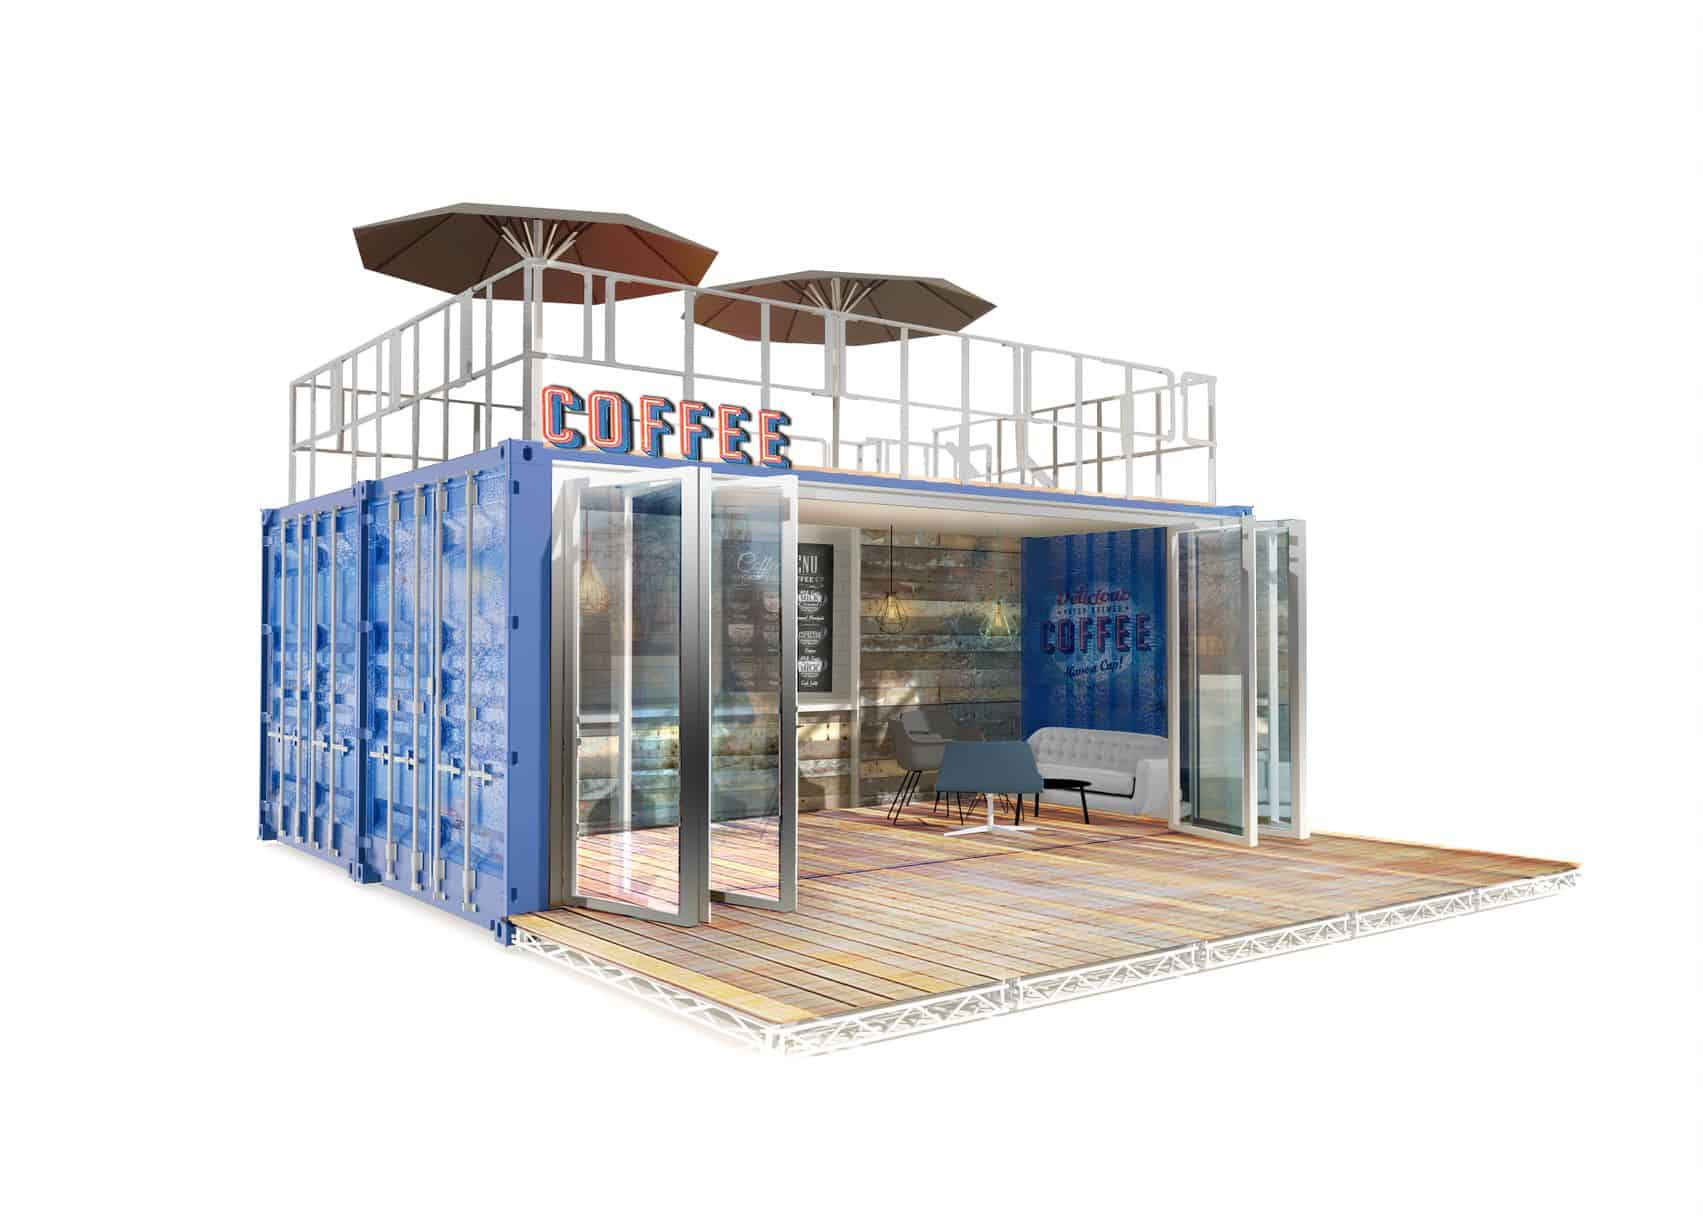 Shipping Container Coffee Shop concept